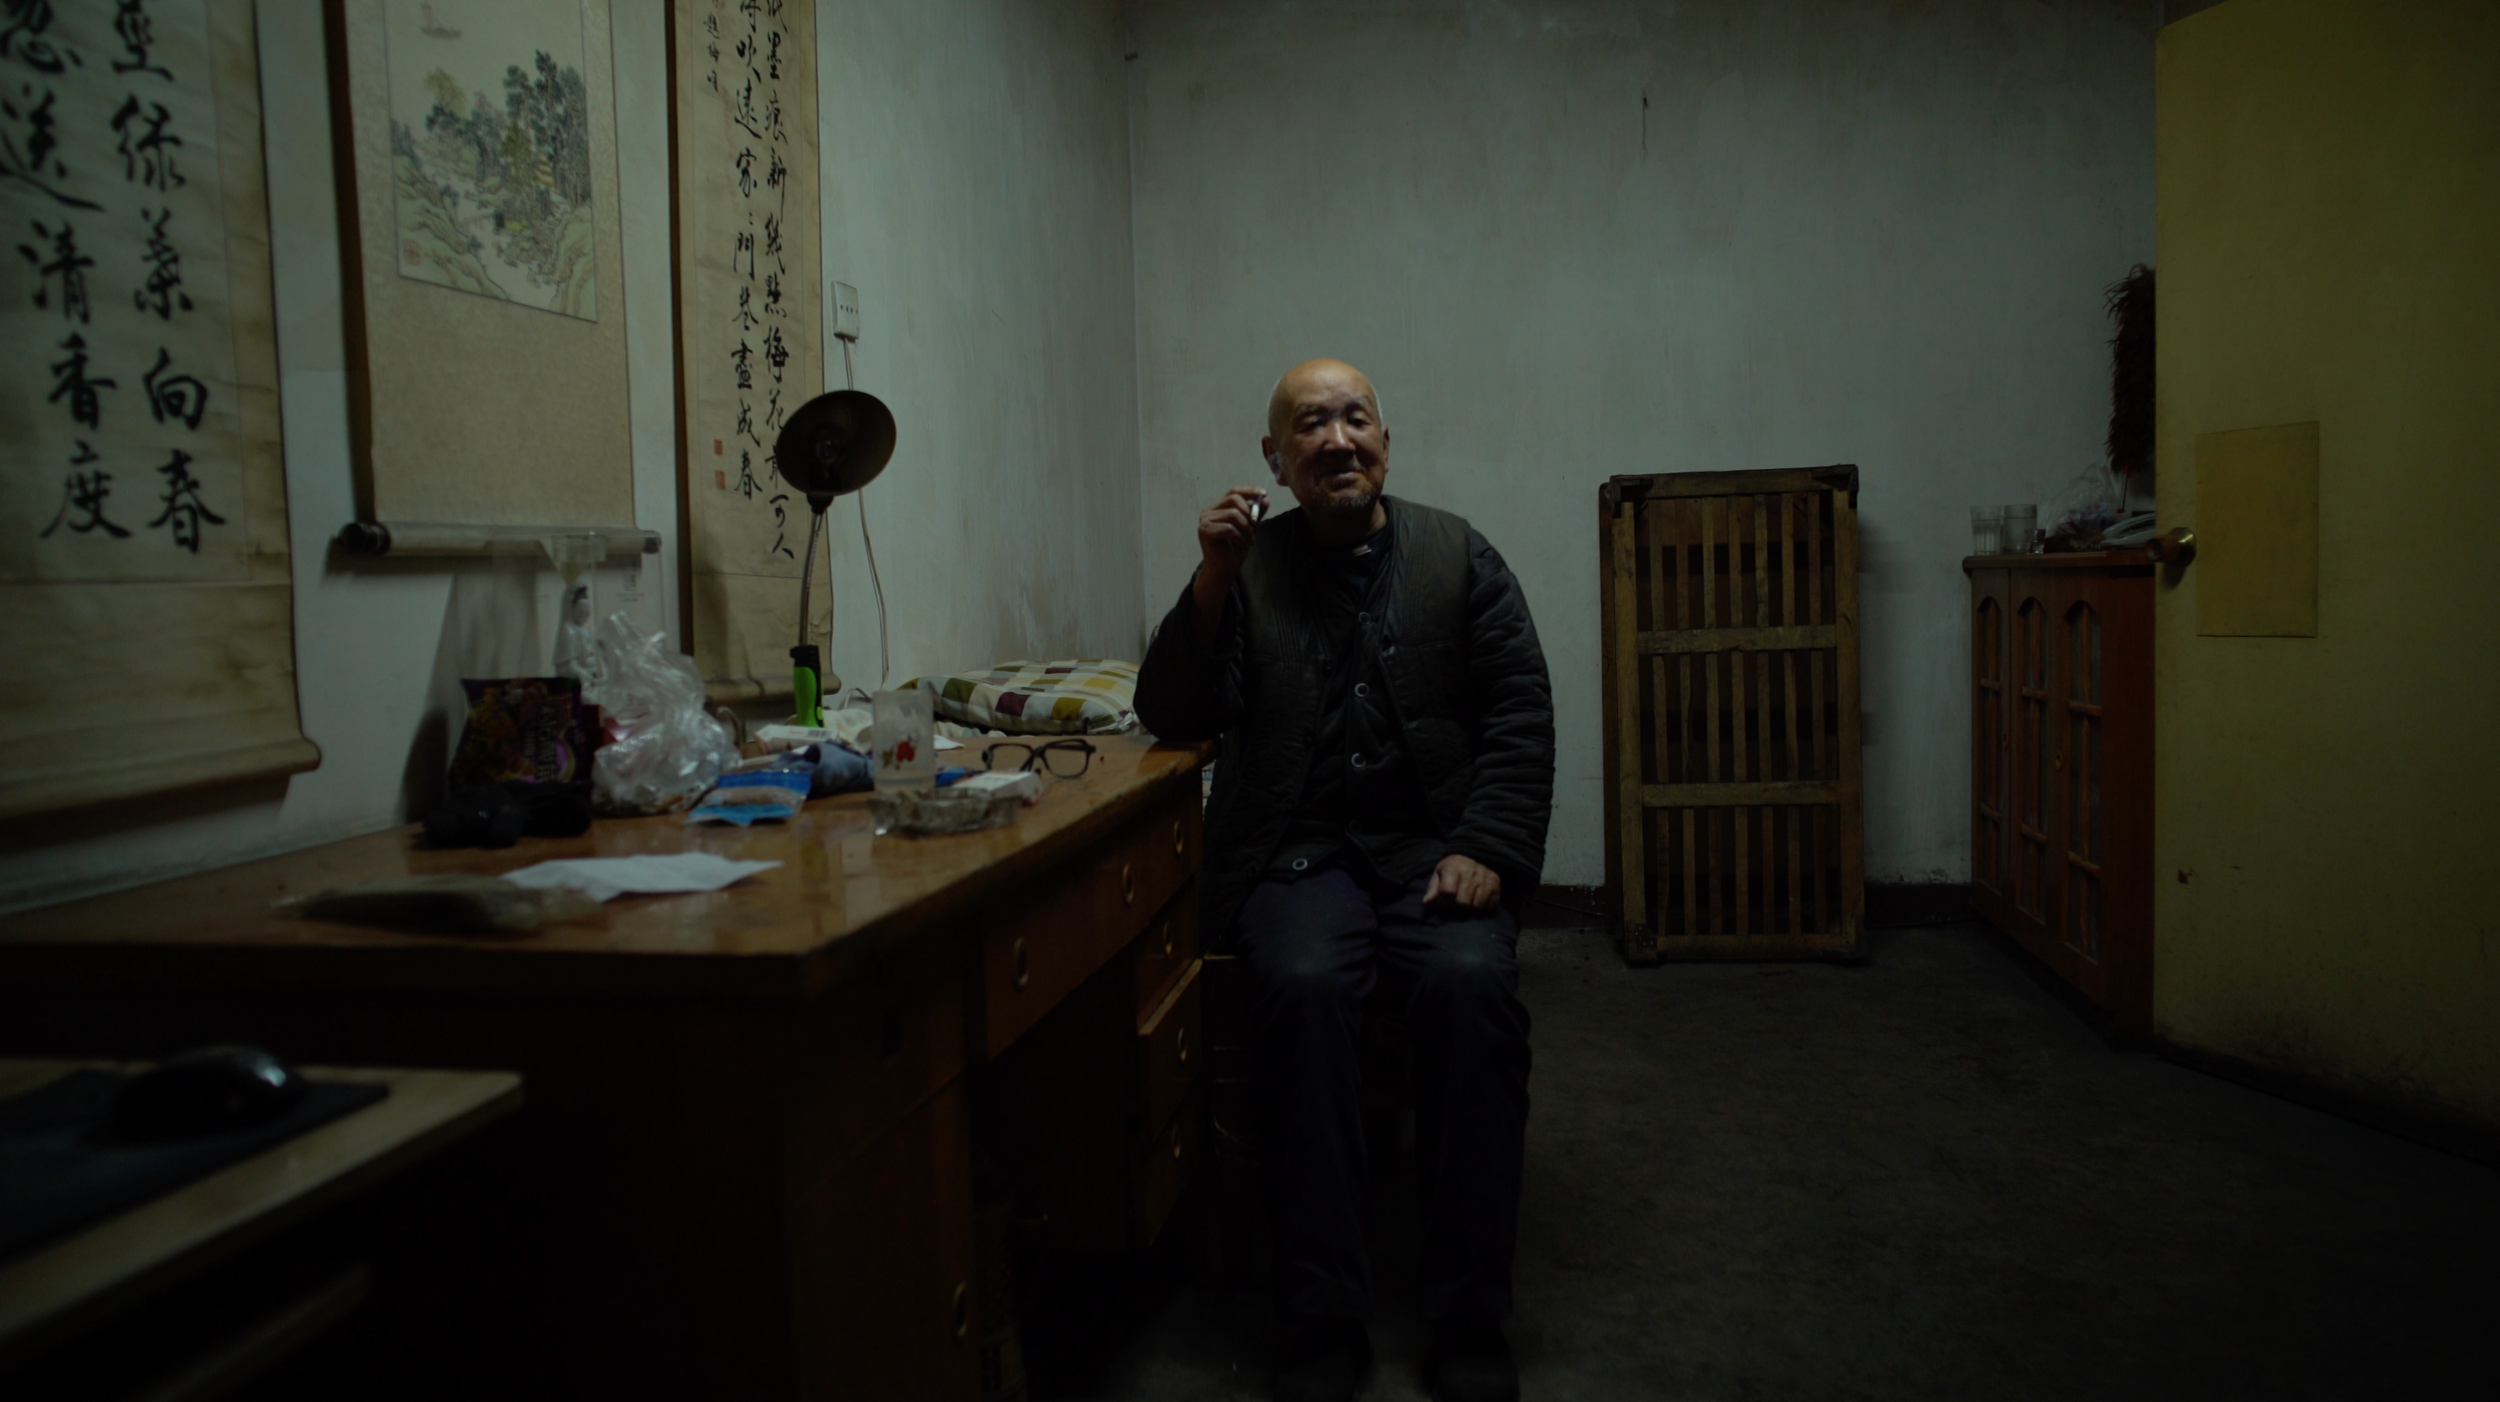 Wang Bing interviews survivors of the Jiabiangou re-education farm that operated from 1958–61.